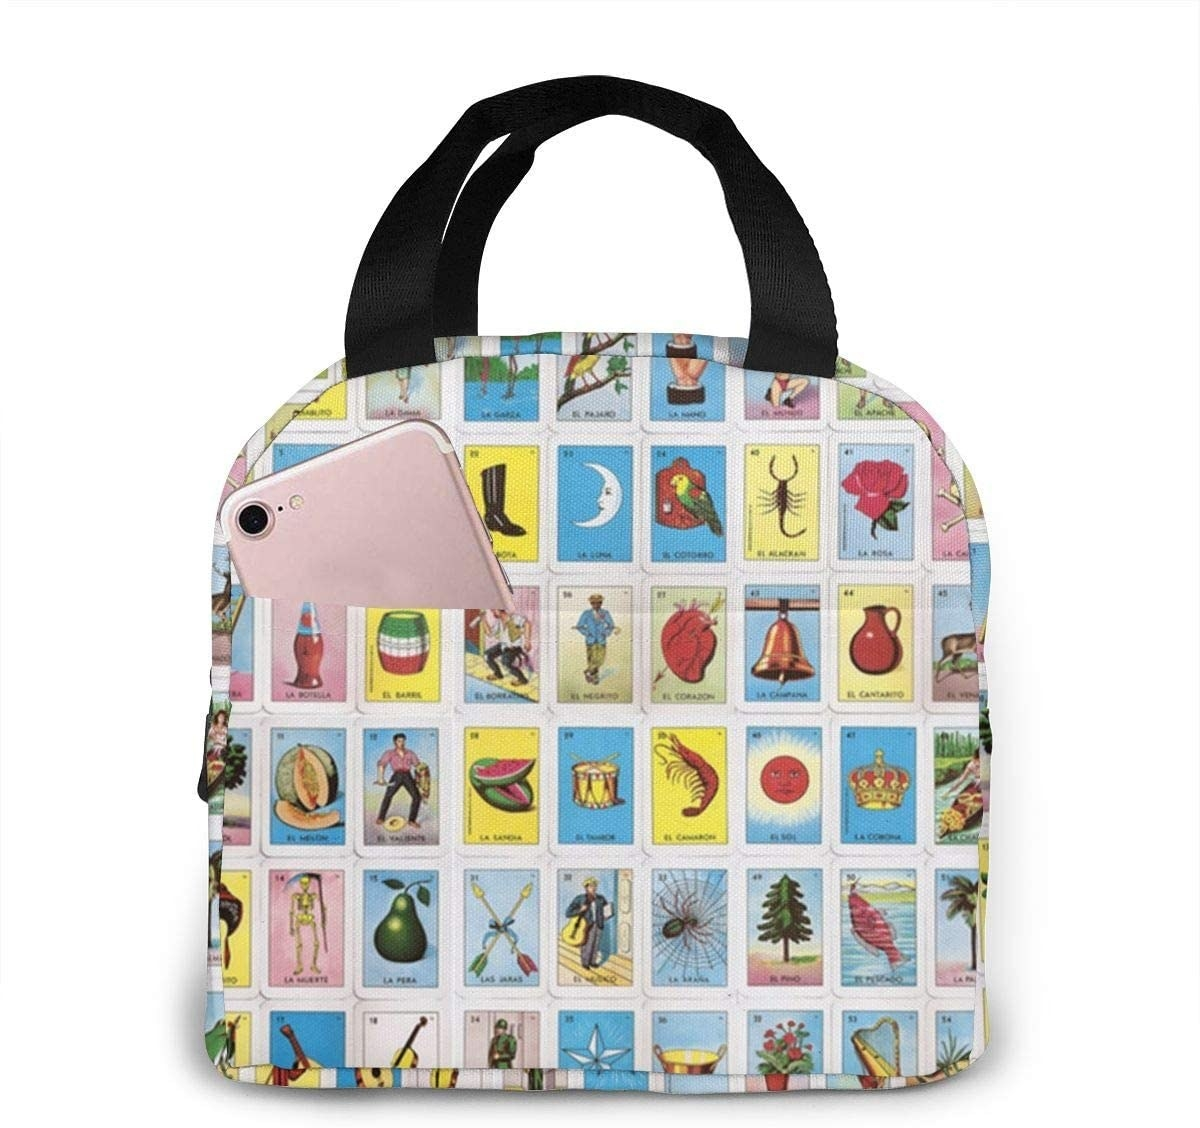 lunchbox with Loteria card print on it